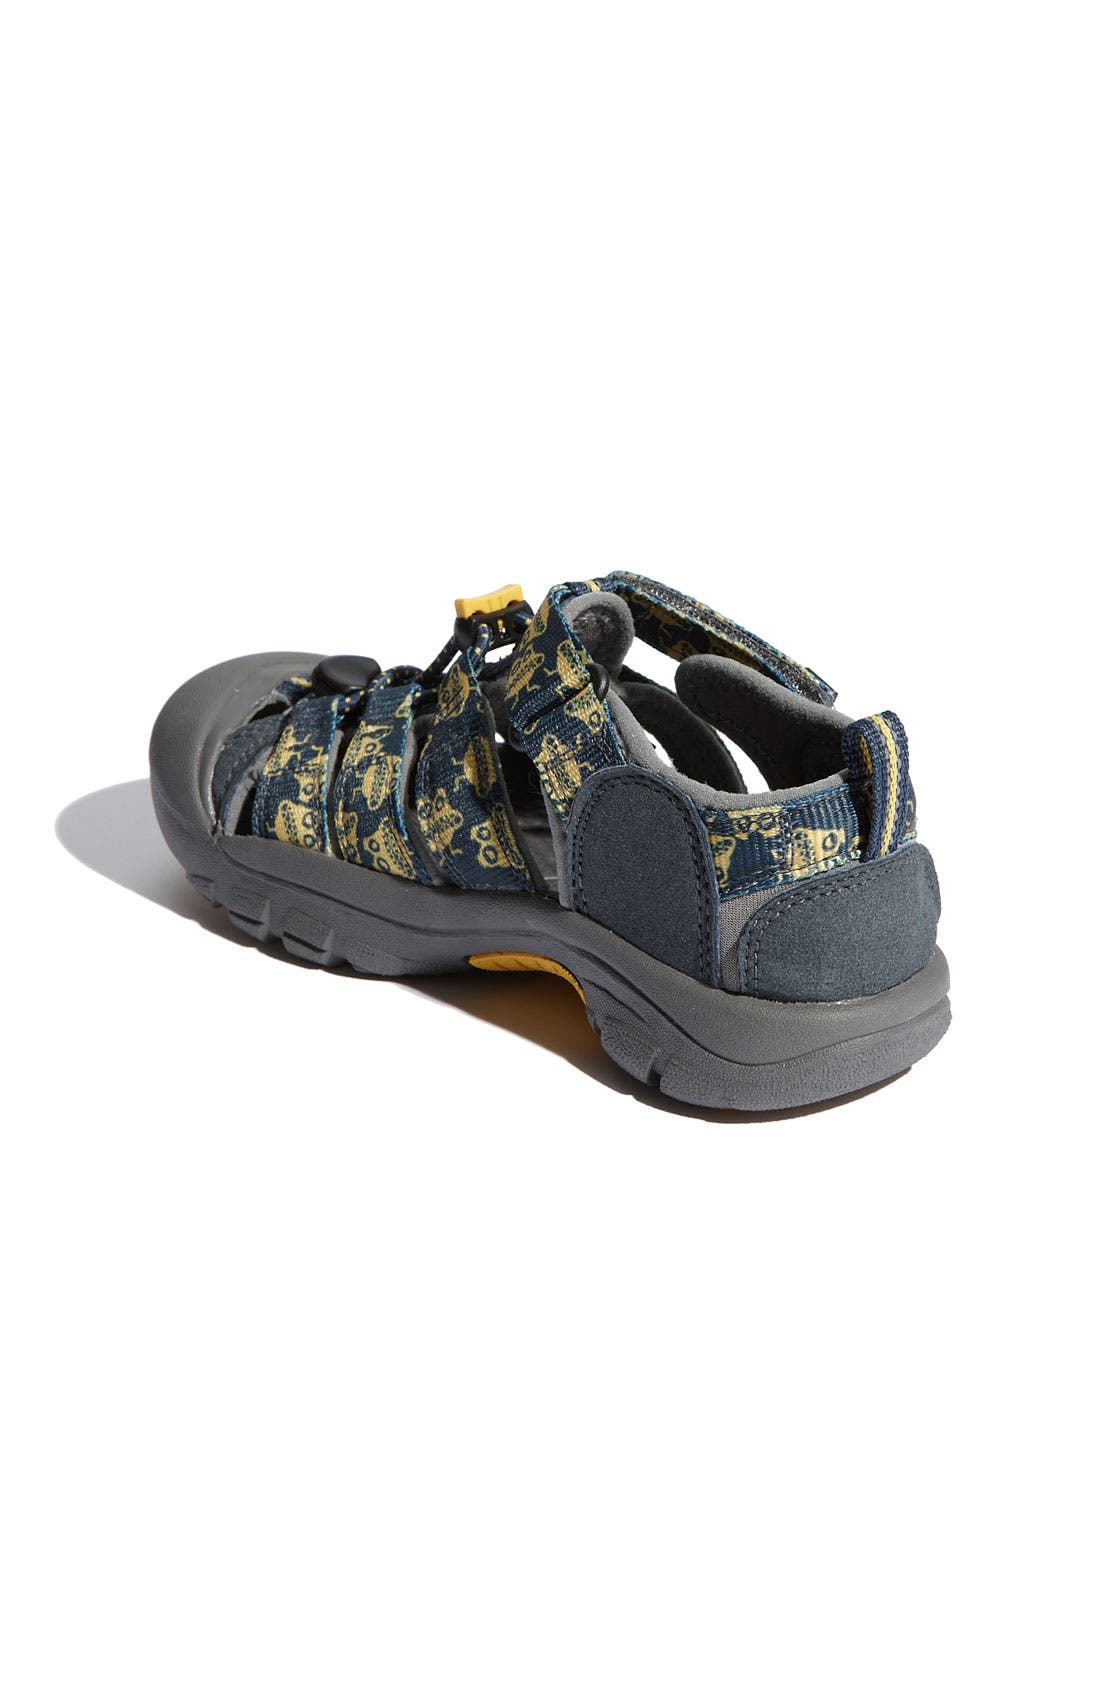 Alternate Image 3  - Keen 'Newport H2' Waterproof Sandal (Toddler, Little Kid & Big Kid)